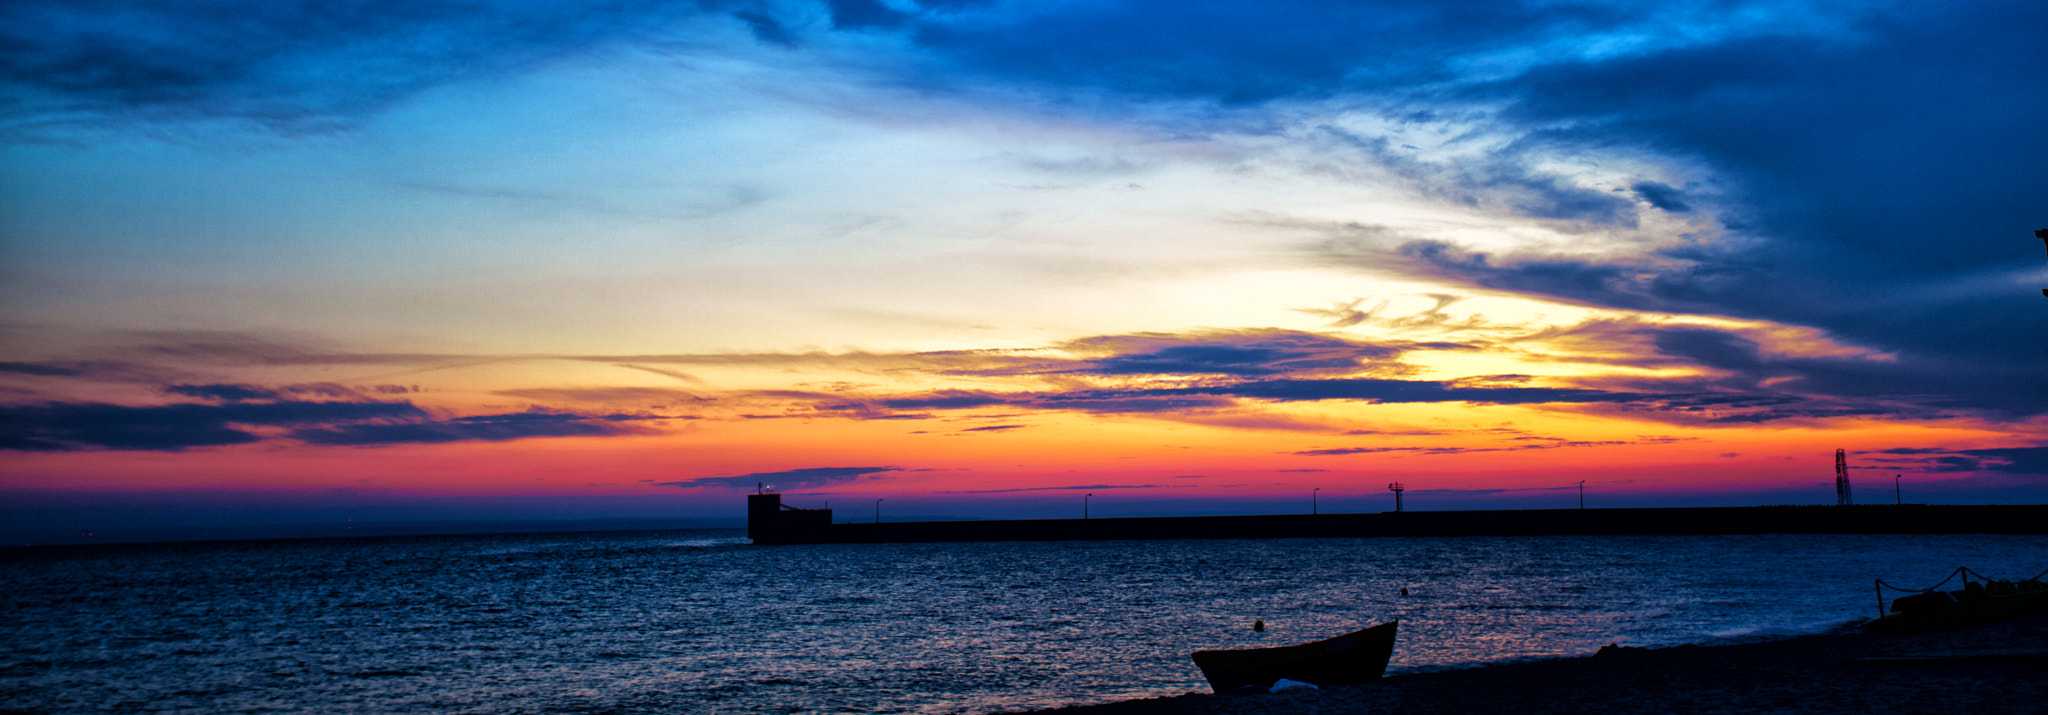 Photograph Sunset at hel by Vivek  on 500px